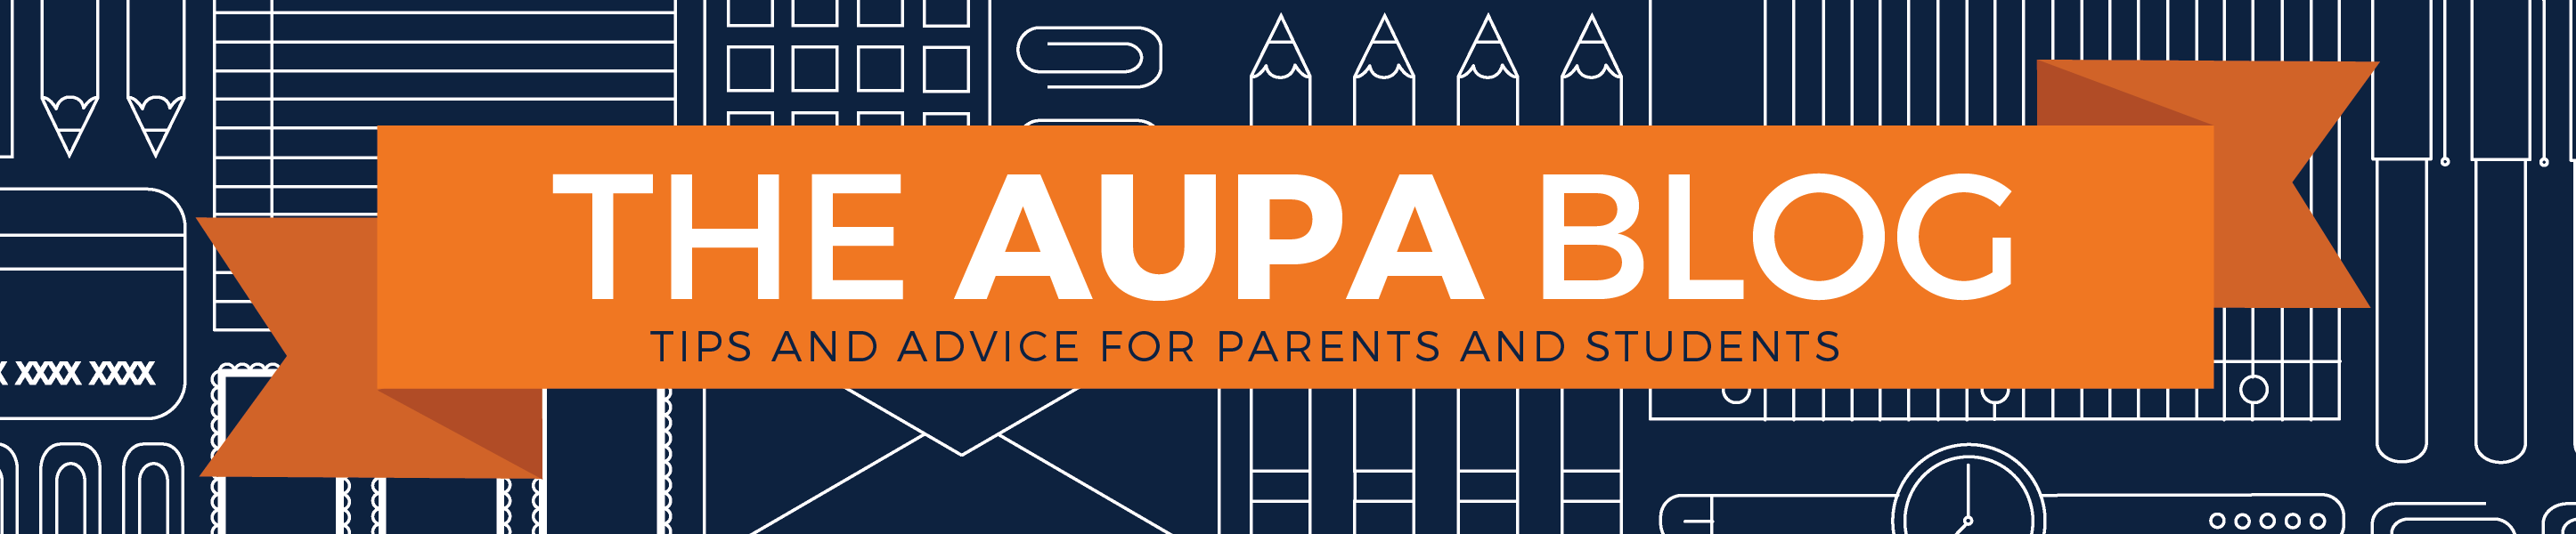 The AUPA blog graphic